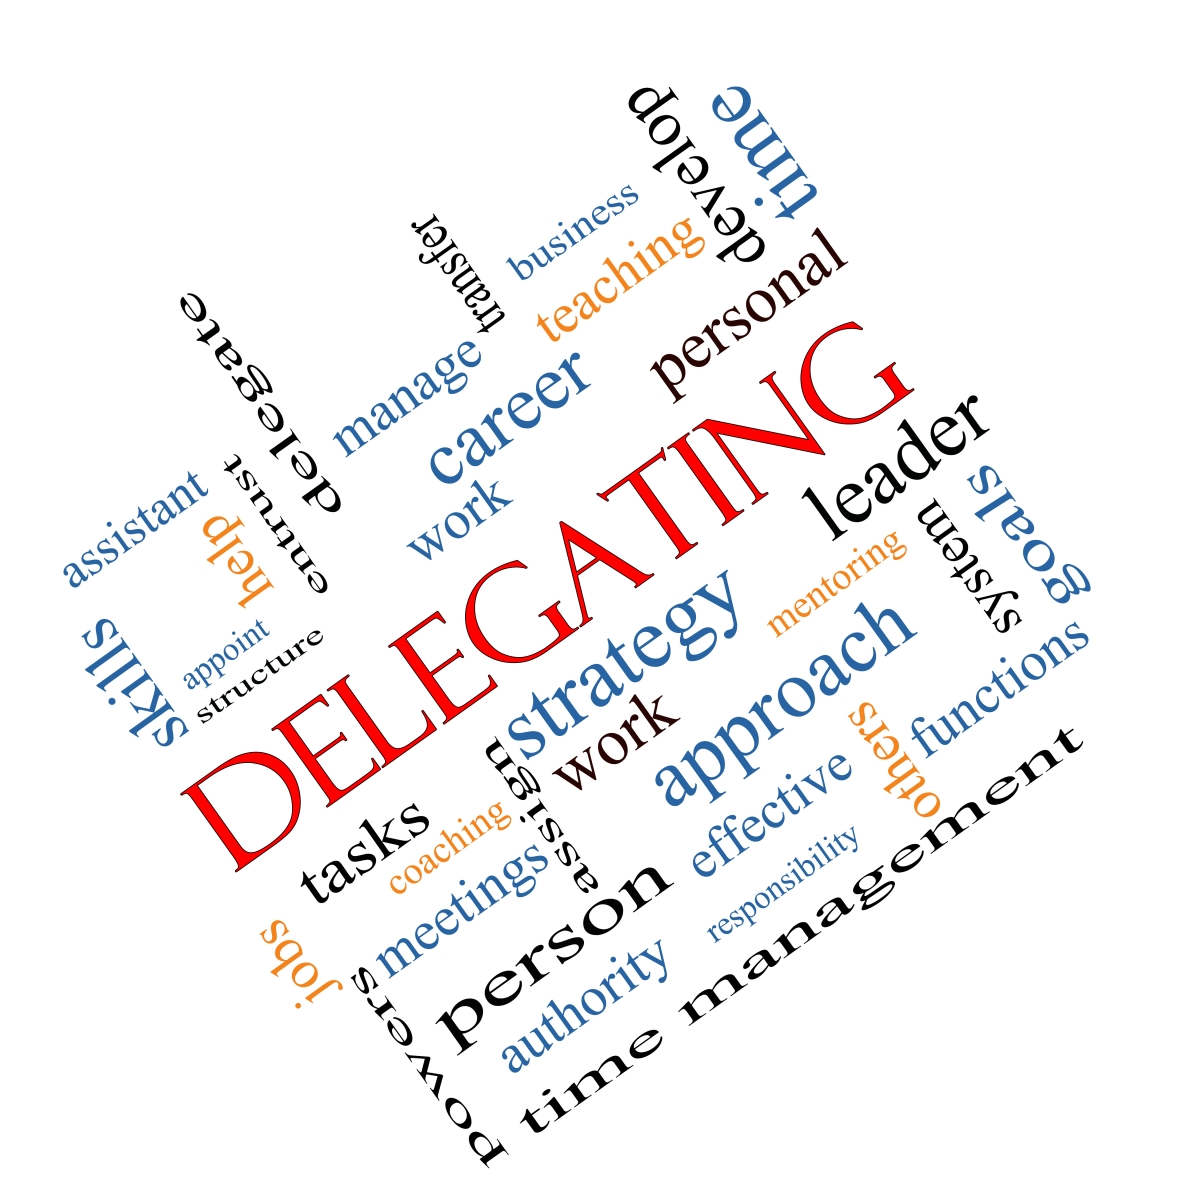 delegate with clarity by following these simple steps